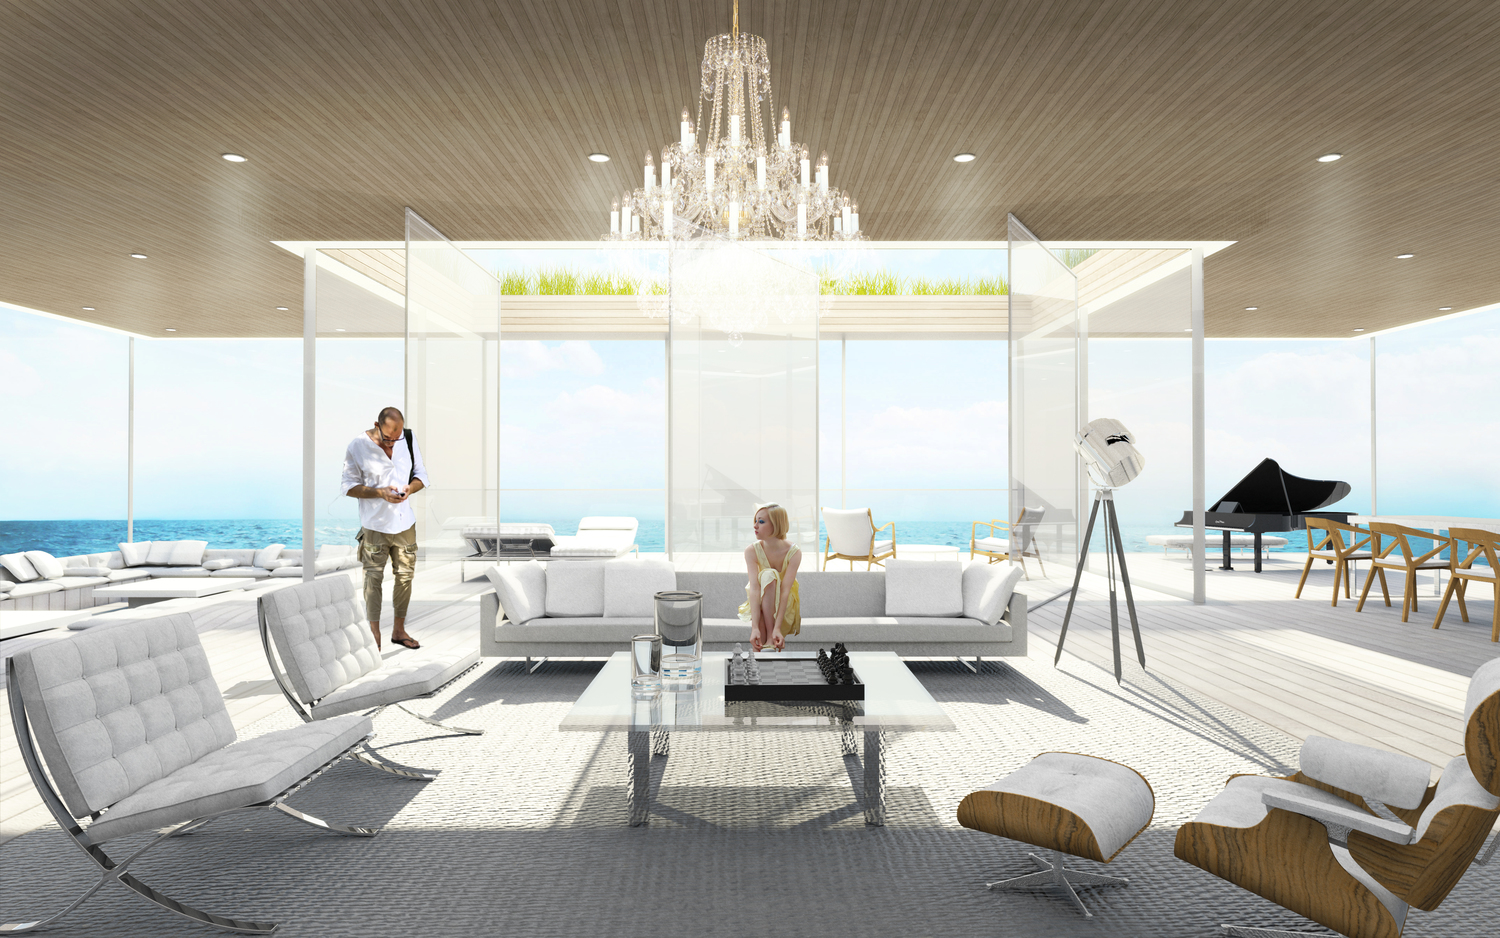 5600 Square Foot Glass Mega Yacht Concept